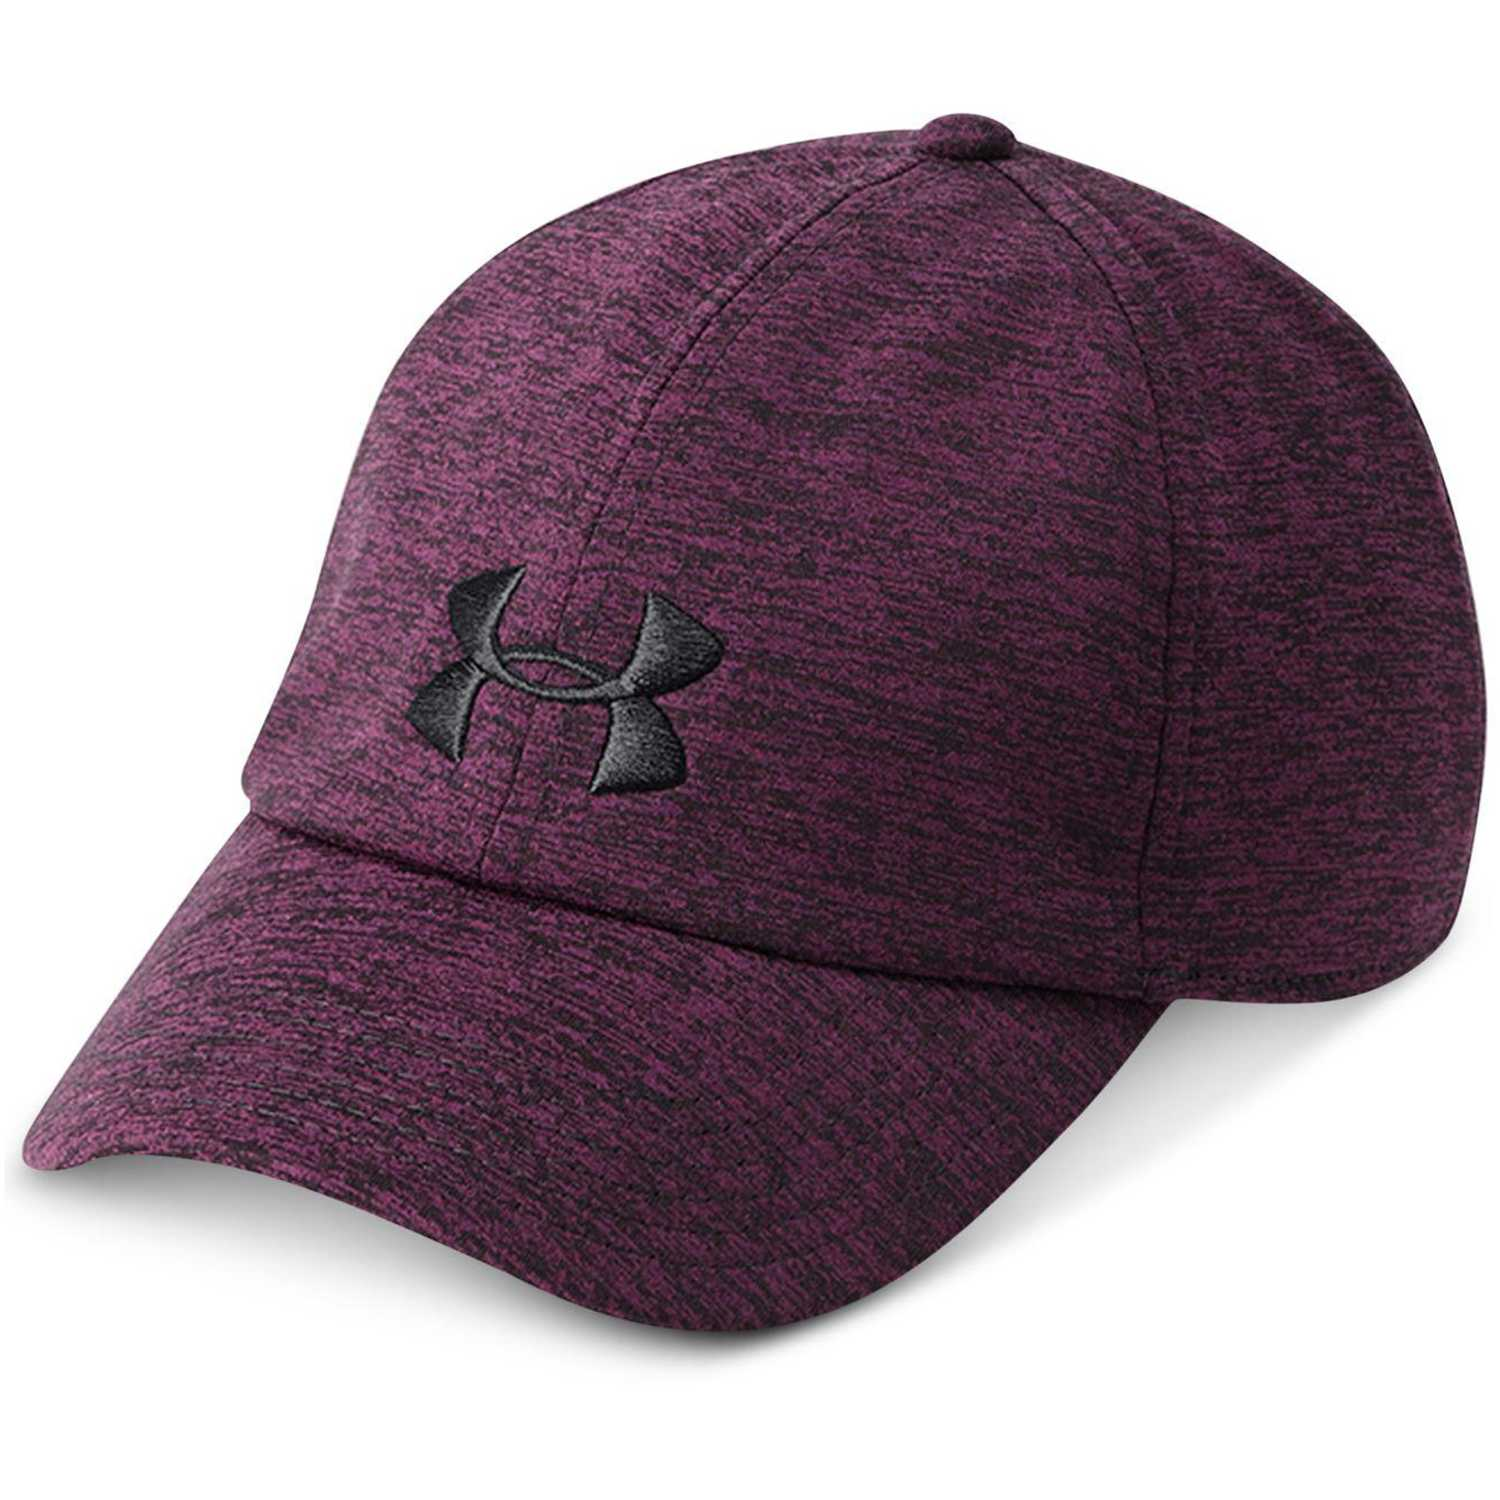 Gorro de Mujer Under Armour Morado ua twisted renegade cap ... f2aa5ed1a0b